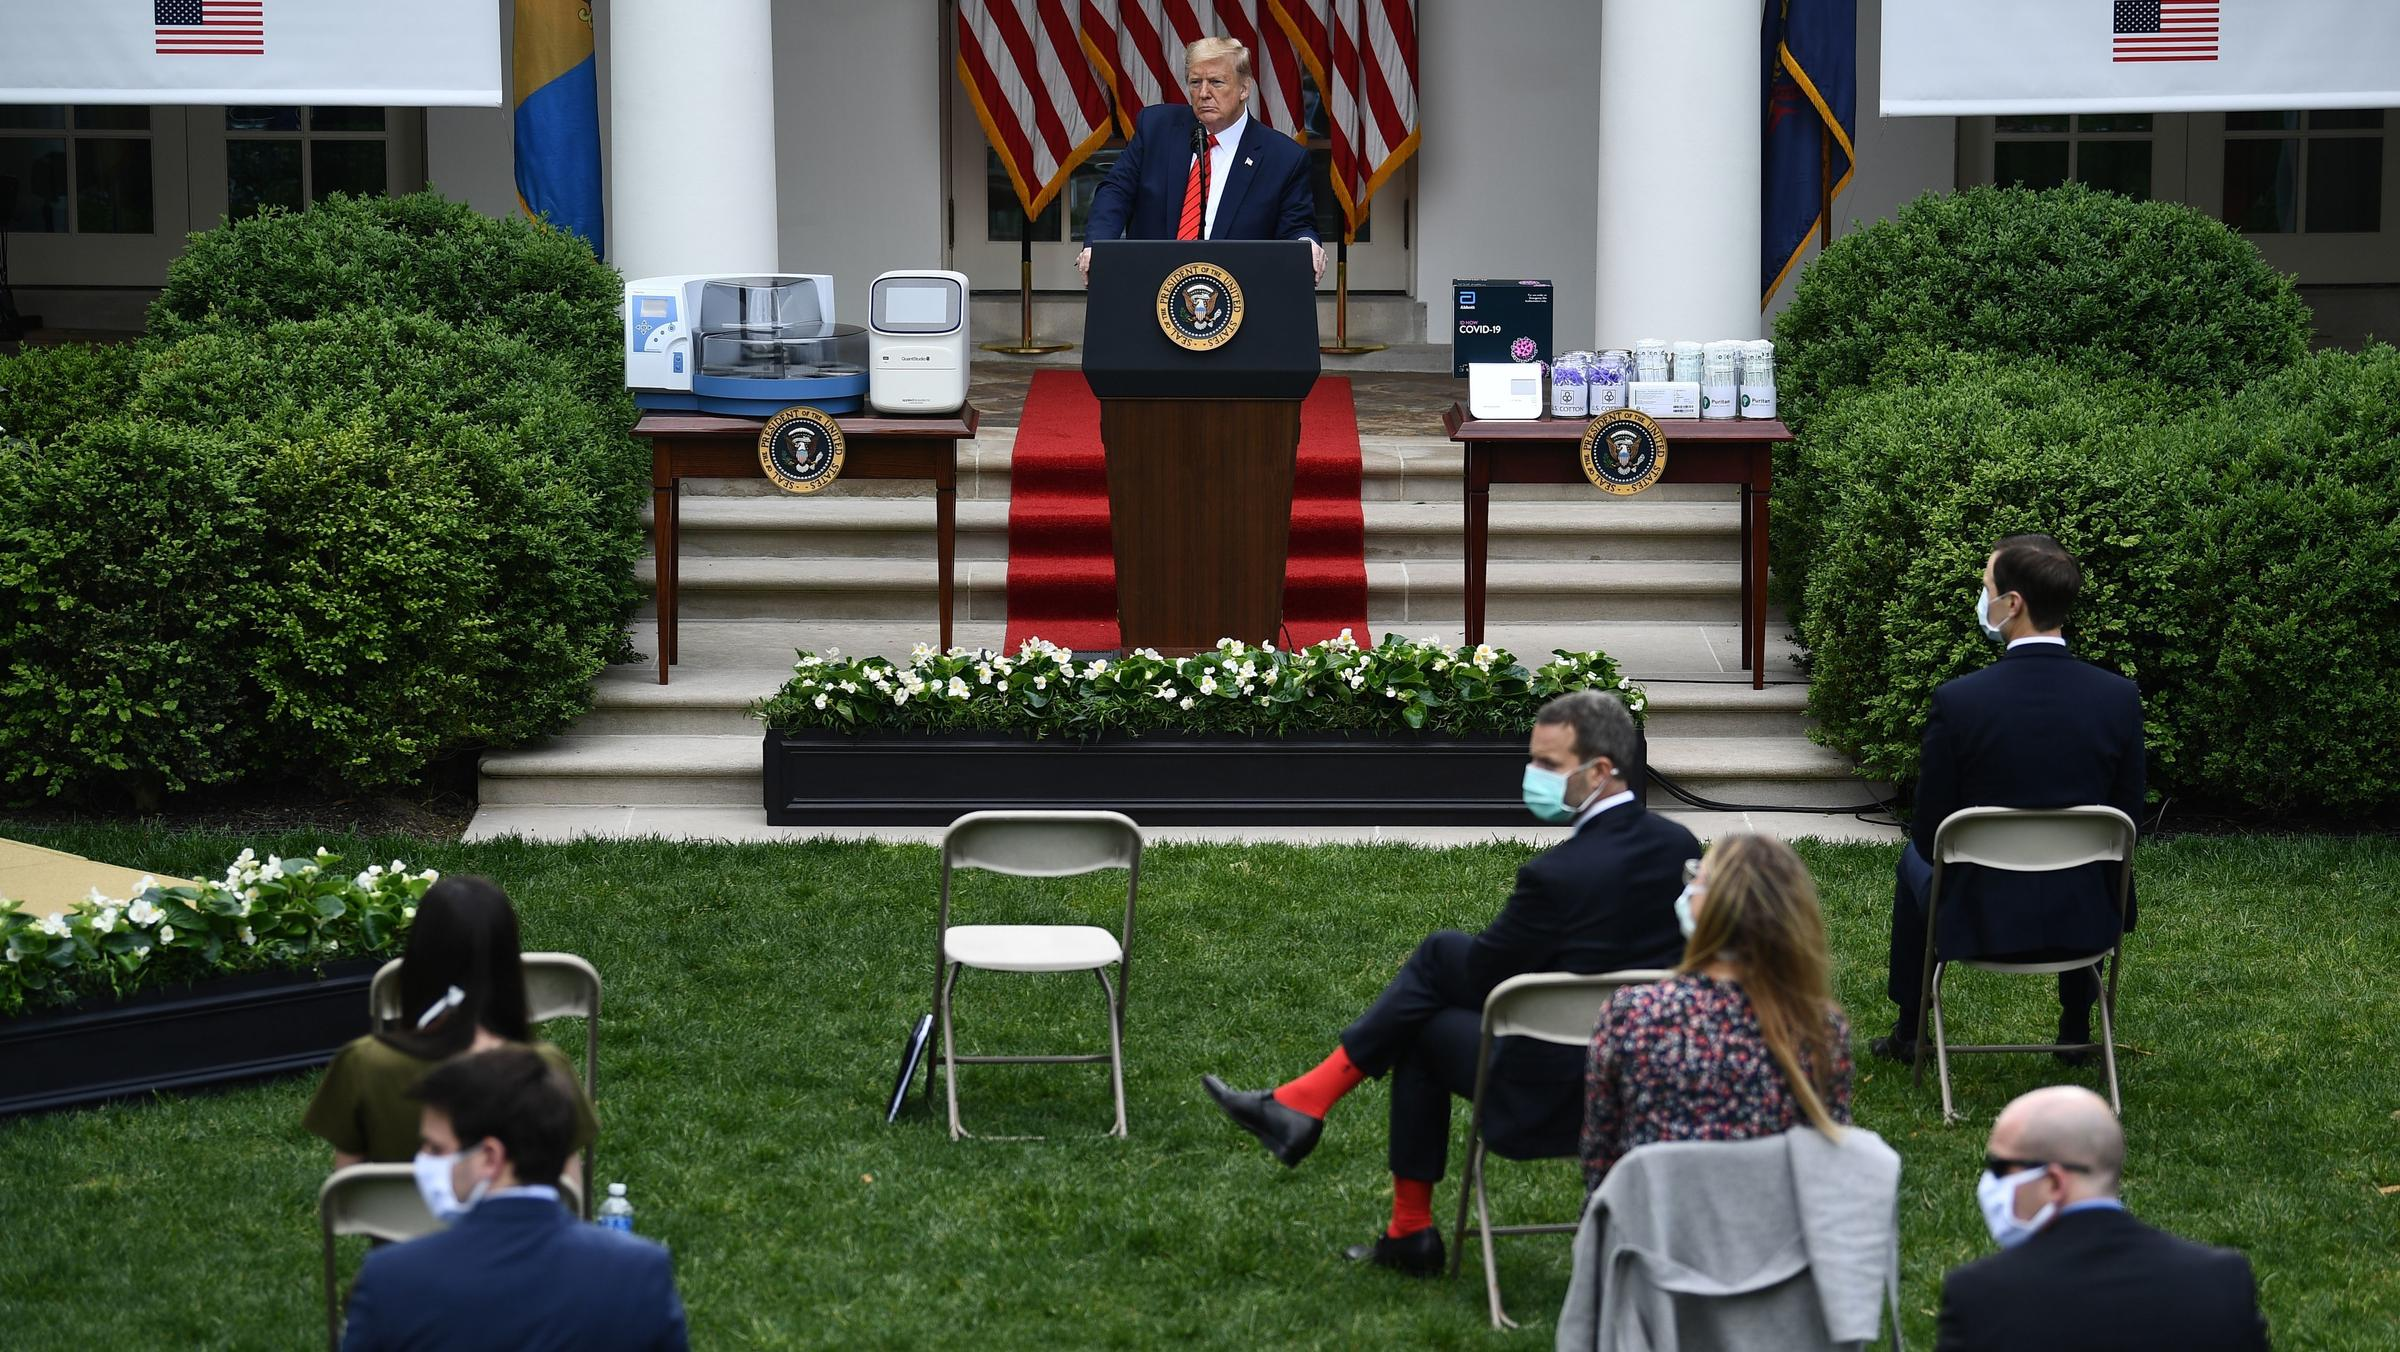 Trump brushes off White House virus outbreak concerns